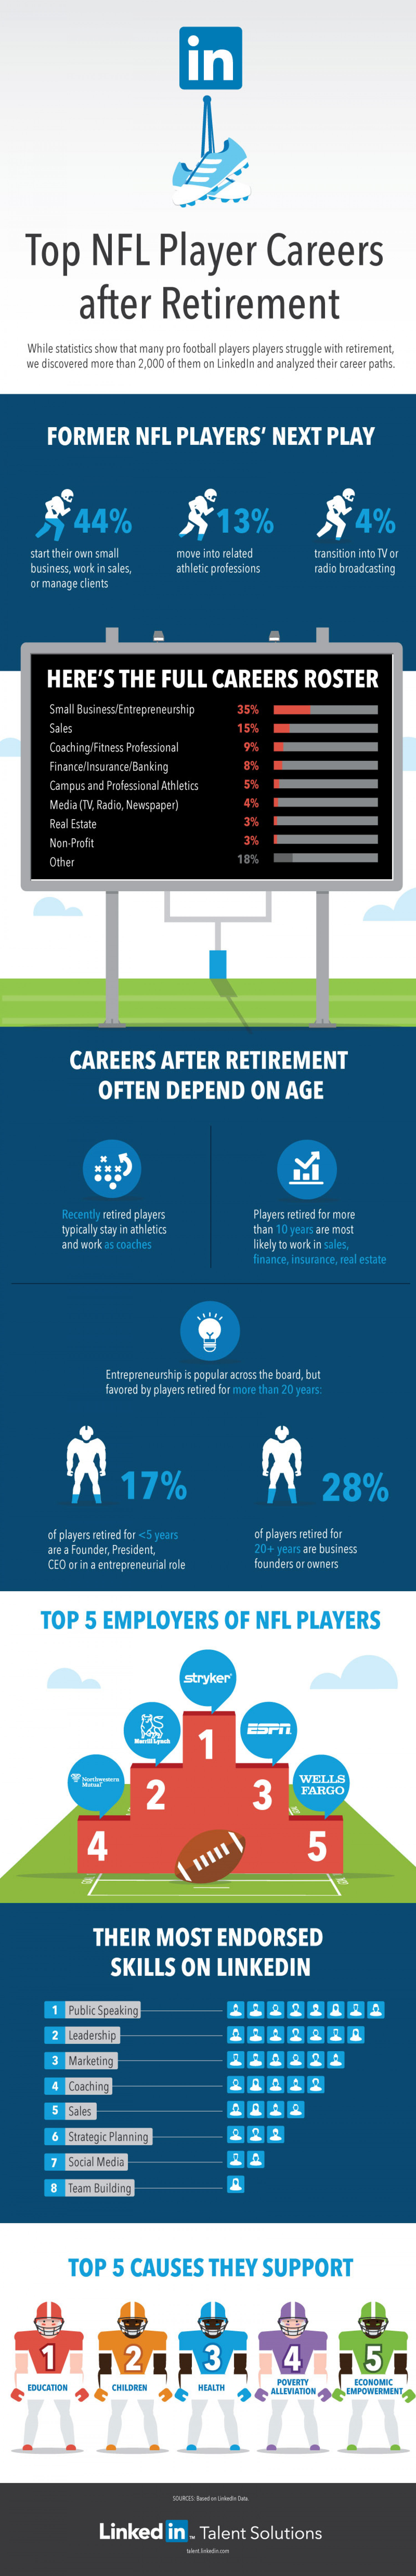 Top NFL Player Careers After Retirement Infographic